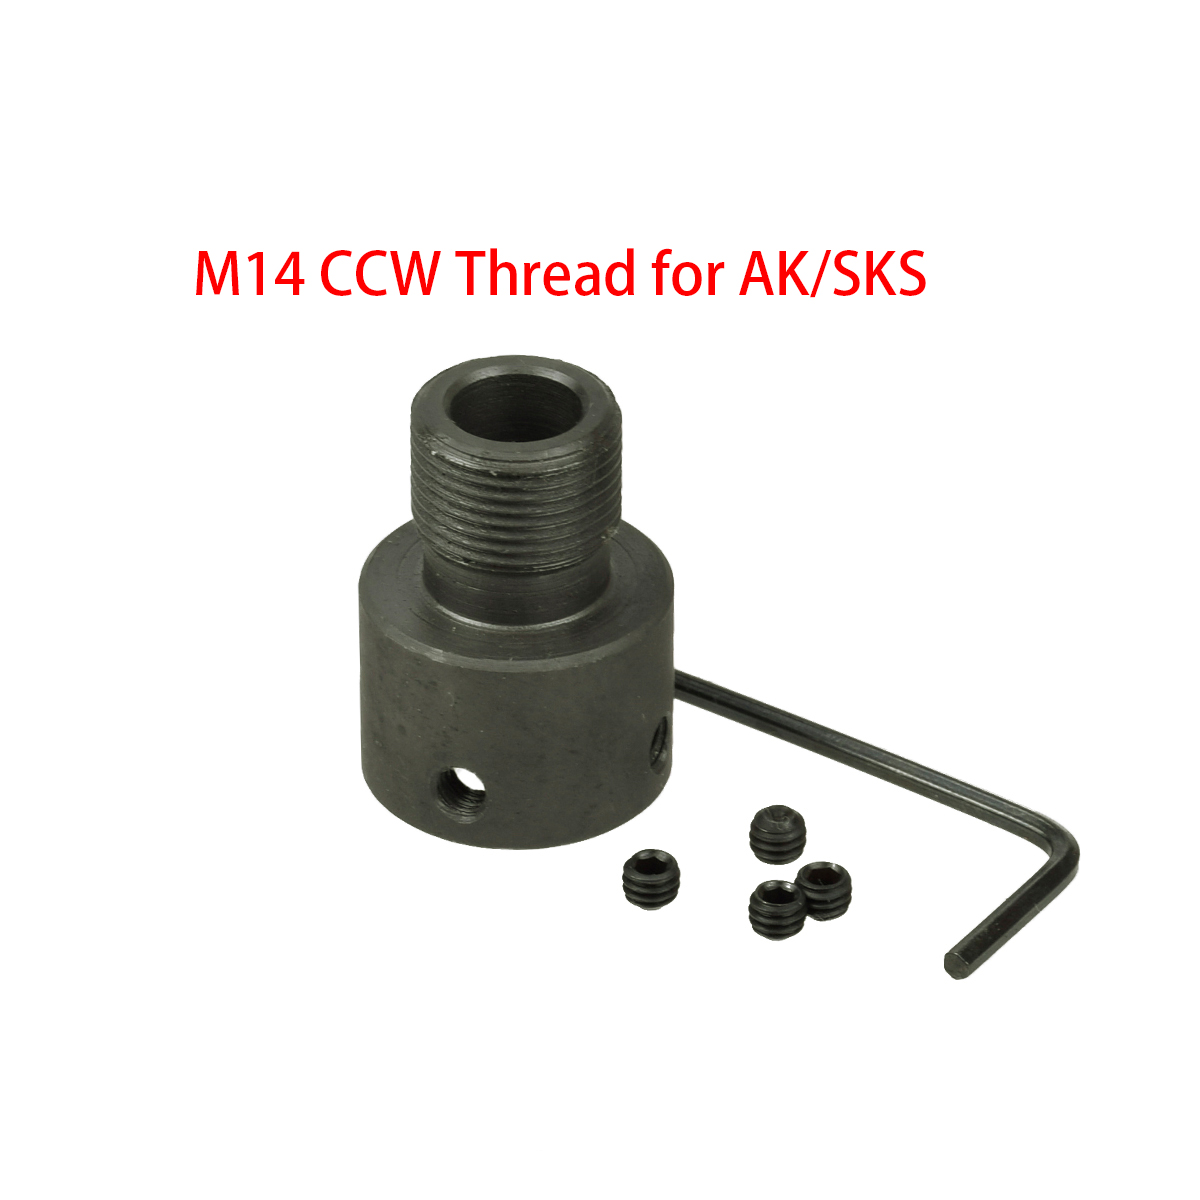 AK47 AK74 M14 Thread AK SKS Muzzle Brake Adaptor Hunting Saiga Accessories Rifle For Non Threaded Barrel